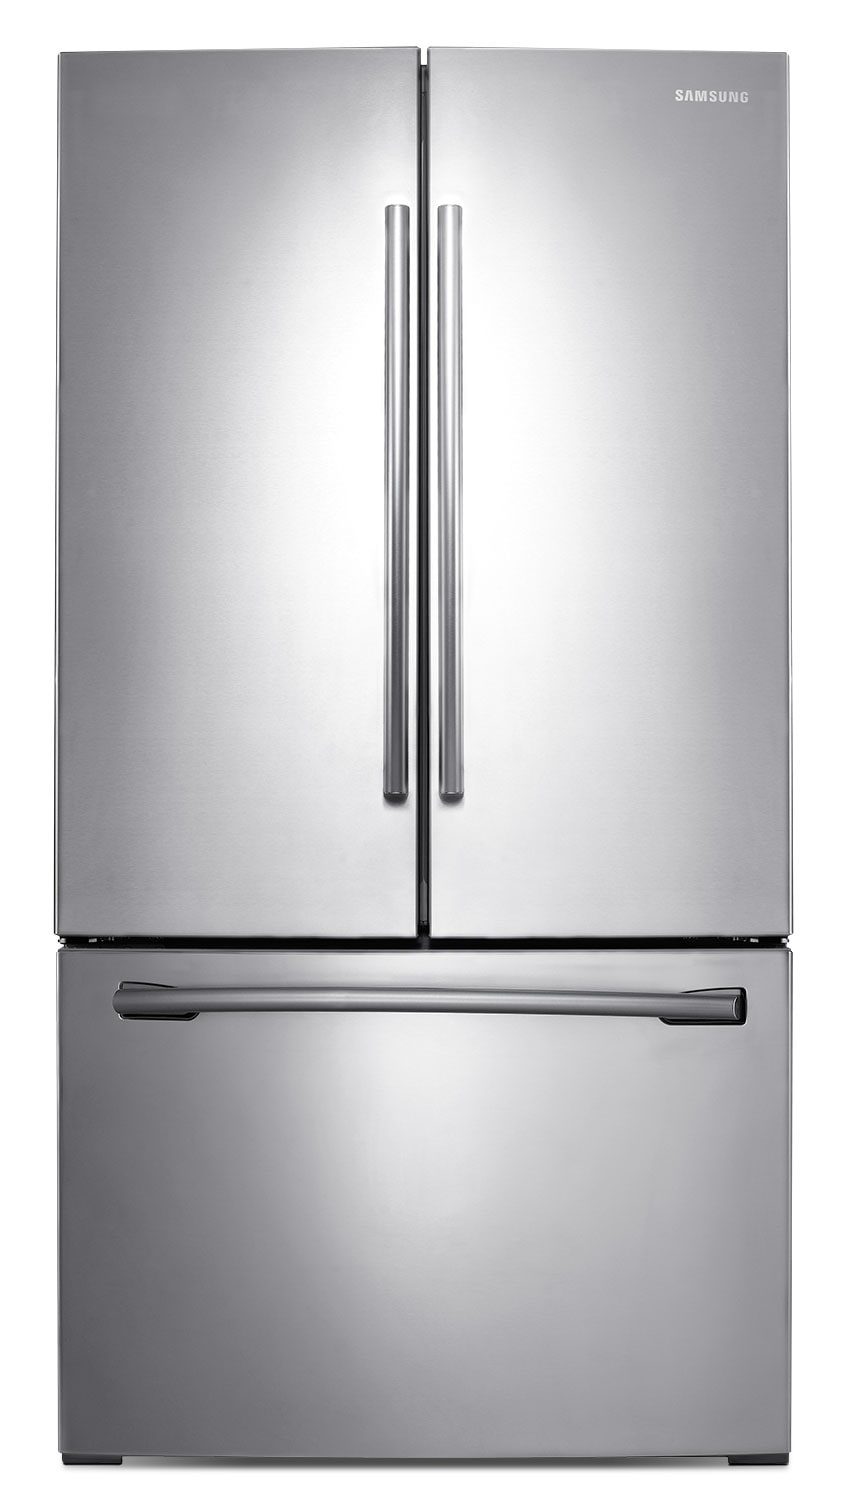 Refrigerators and Freezers - Samsung Stainless Steel French Door Refrigerator (25.5 Cu. Ft.) - RF26HFENDSR/AA